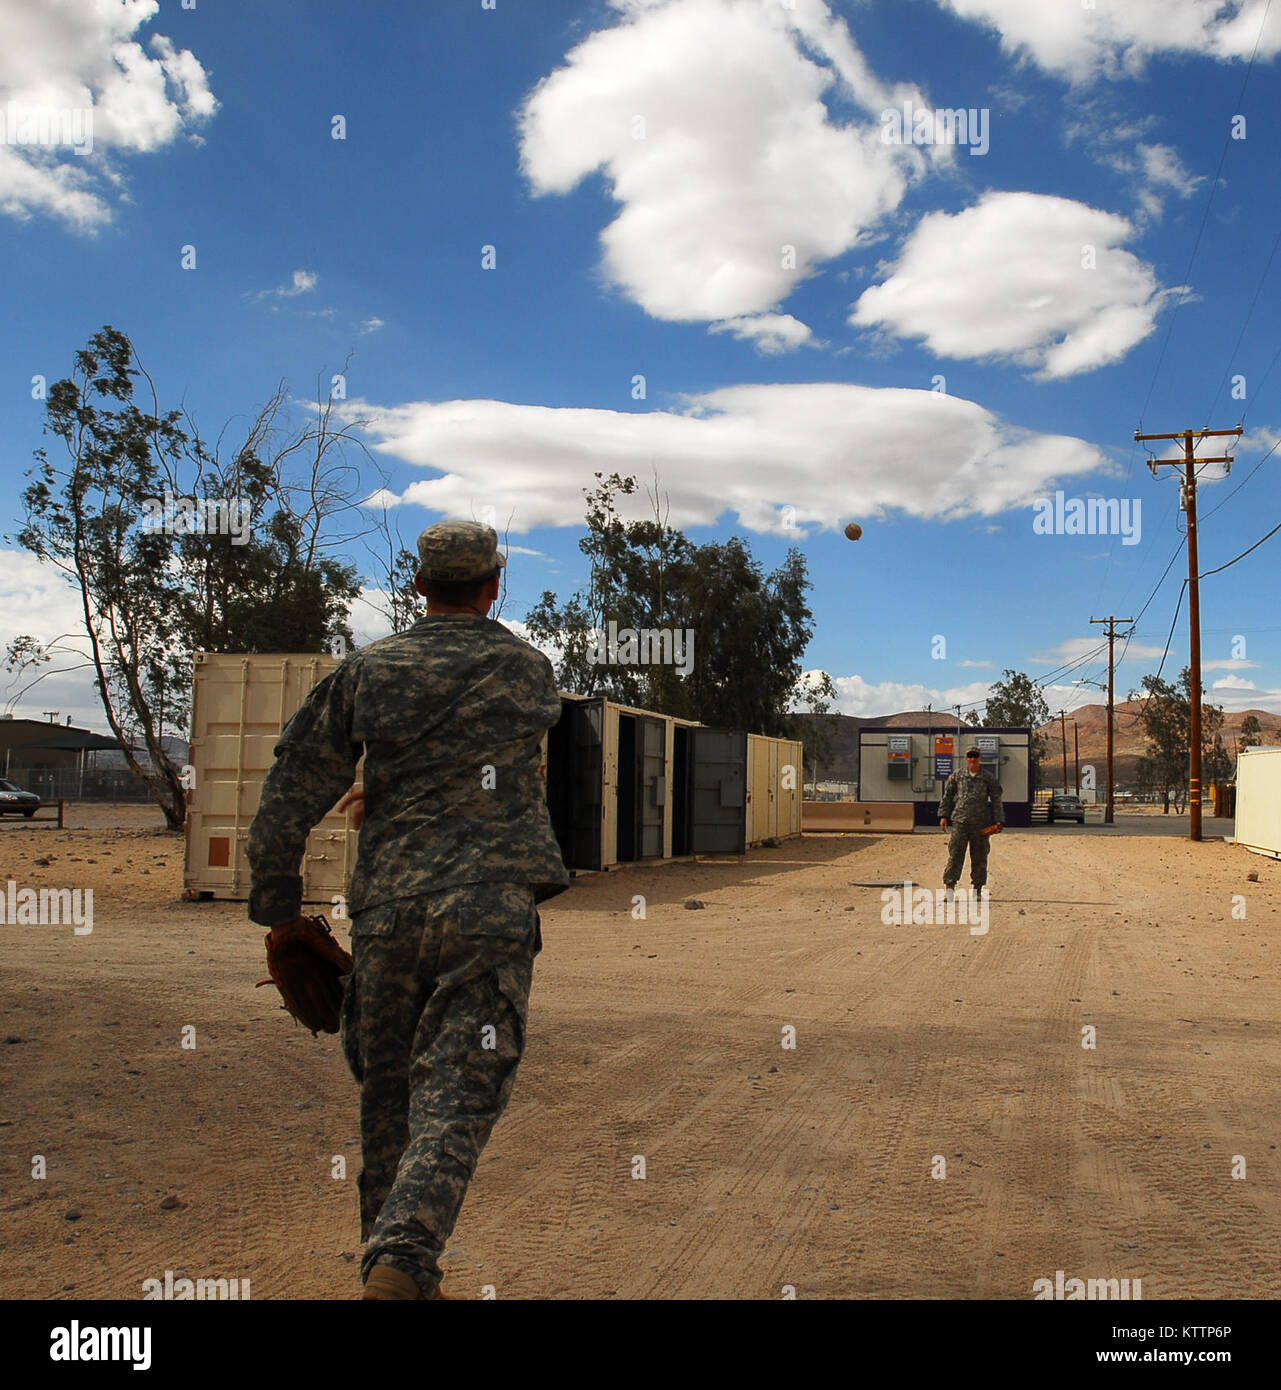 NATIONAL TRAINING CENTER, FORT IRWIN, CA – Spc. Charles Perry (left) and Spc. Ryan Galbraith (right), both of Hilton - Stock Image